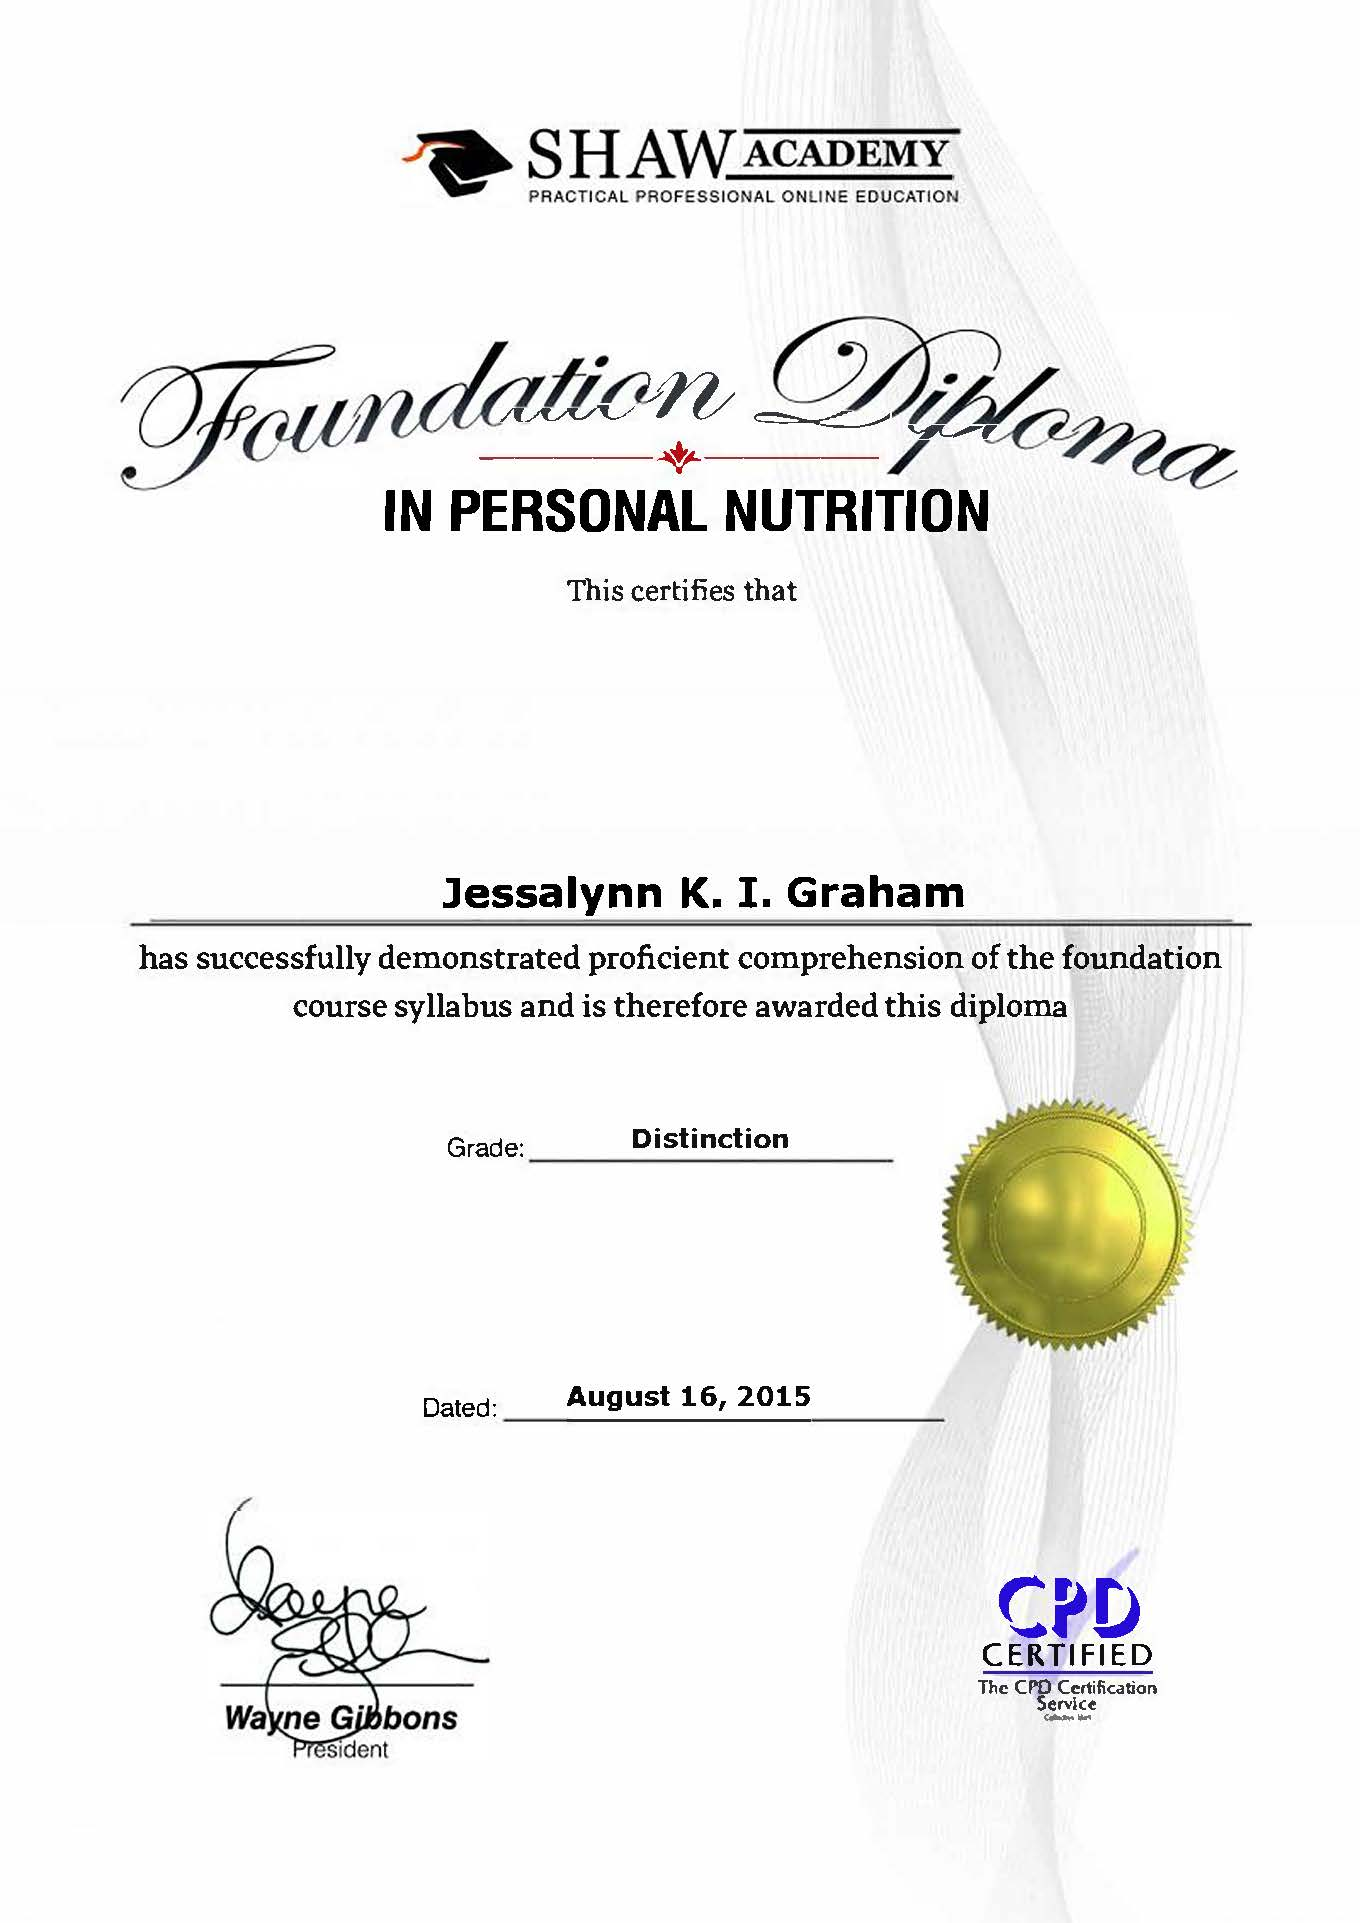 Personal Nutrition Diploma